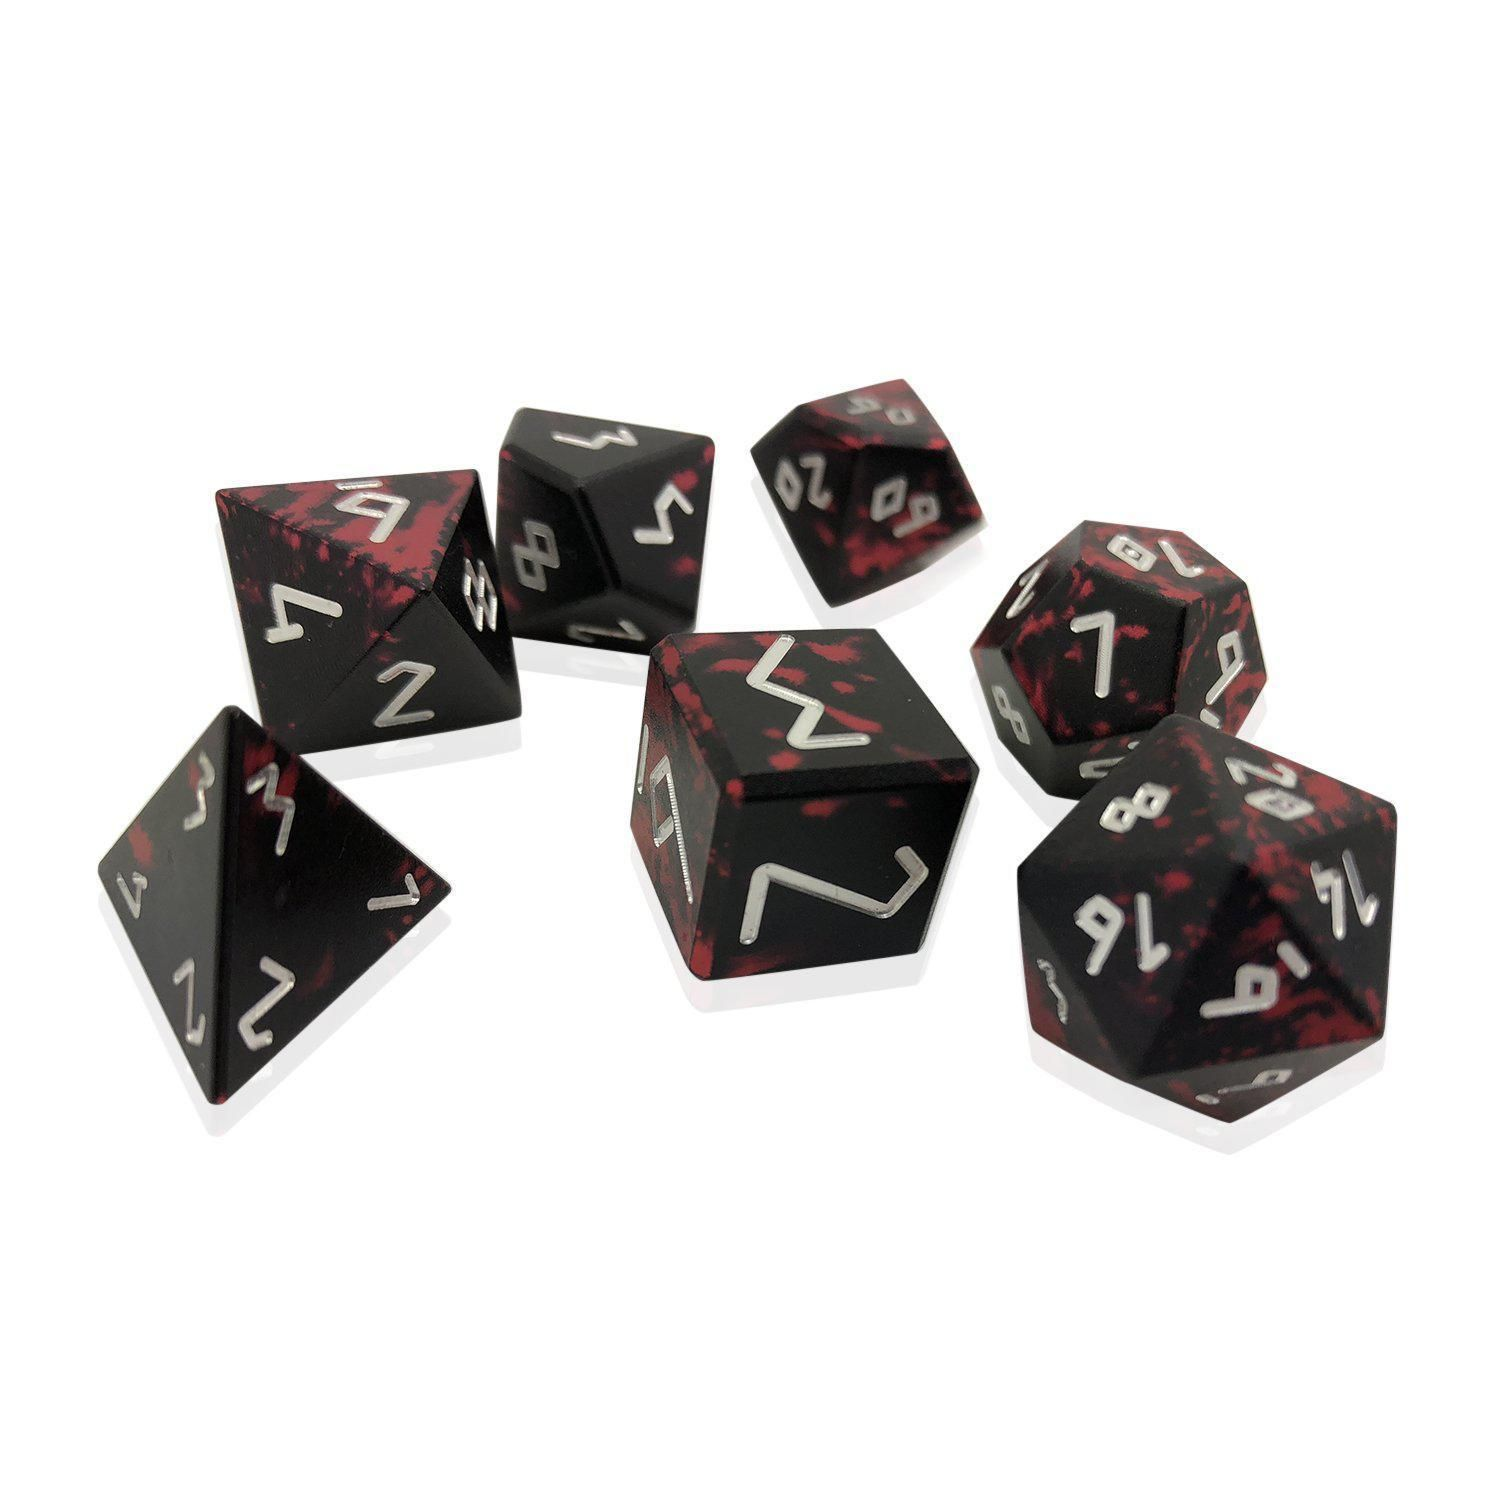 Demons Blood Wondrous Dice Norse Font Set Of 7 Rpg Dice By